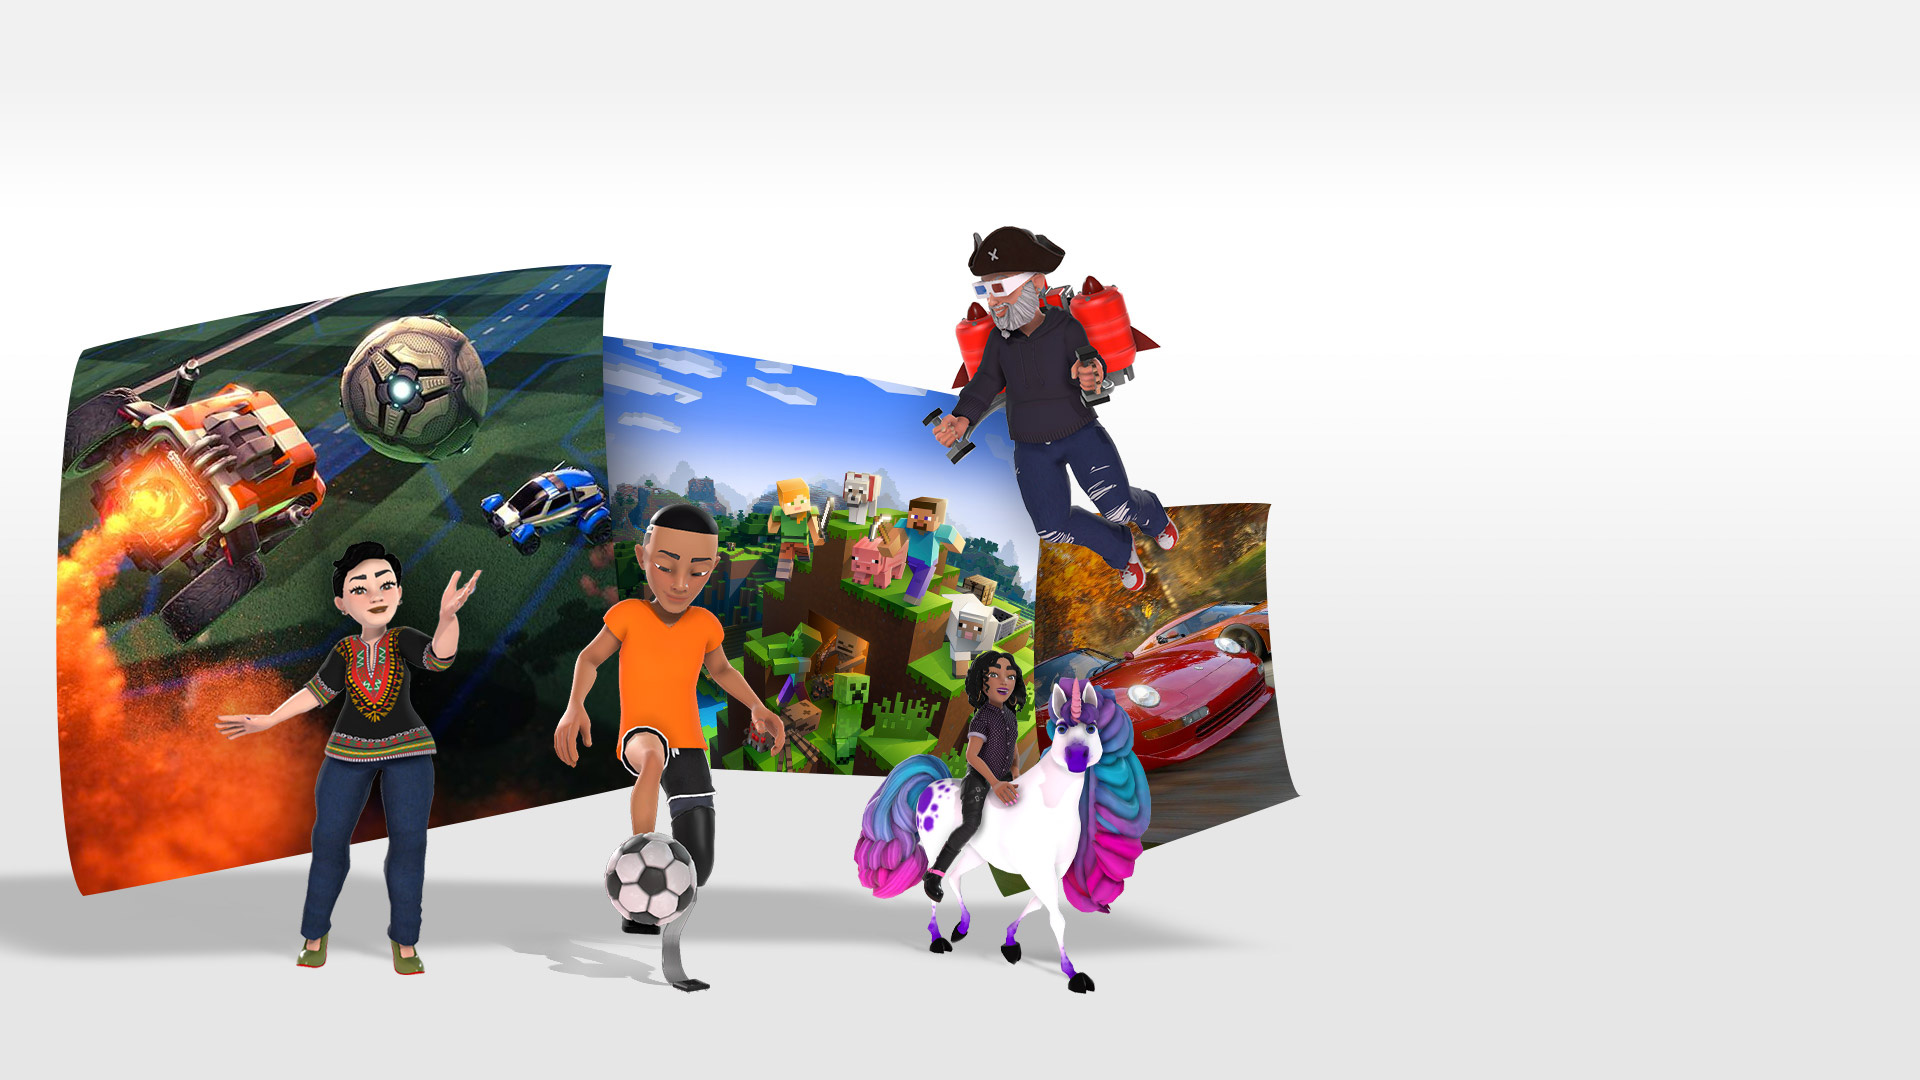 Gamer avatars with gameplay images from Rocket League, Minecraft and Forza Horizon 4 behind them.